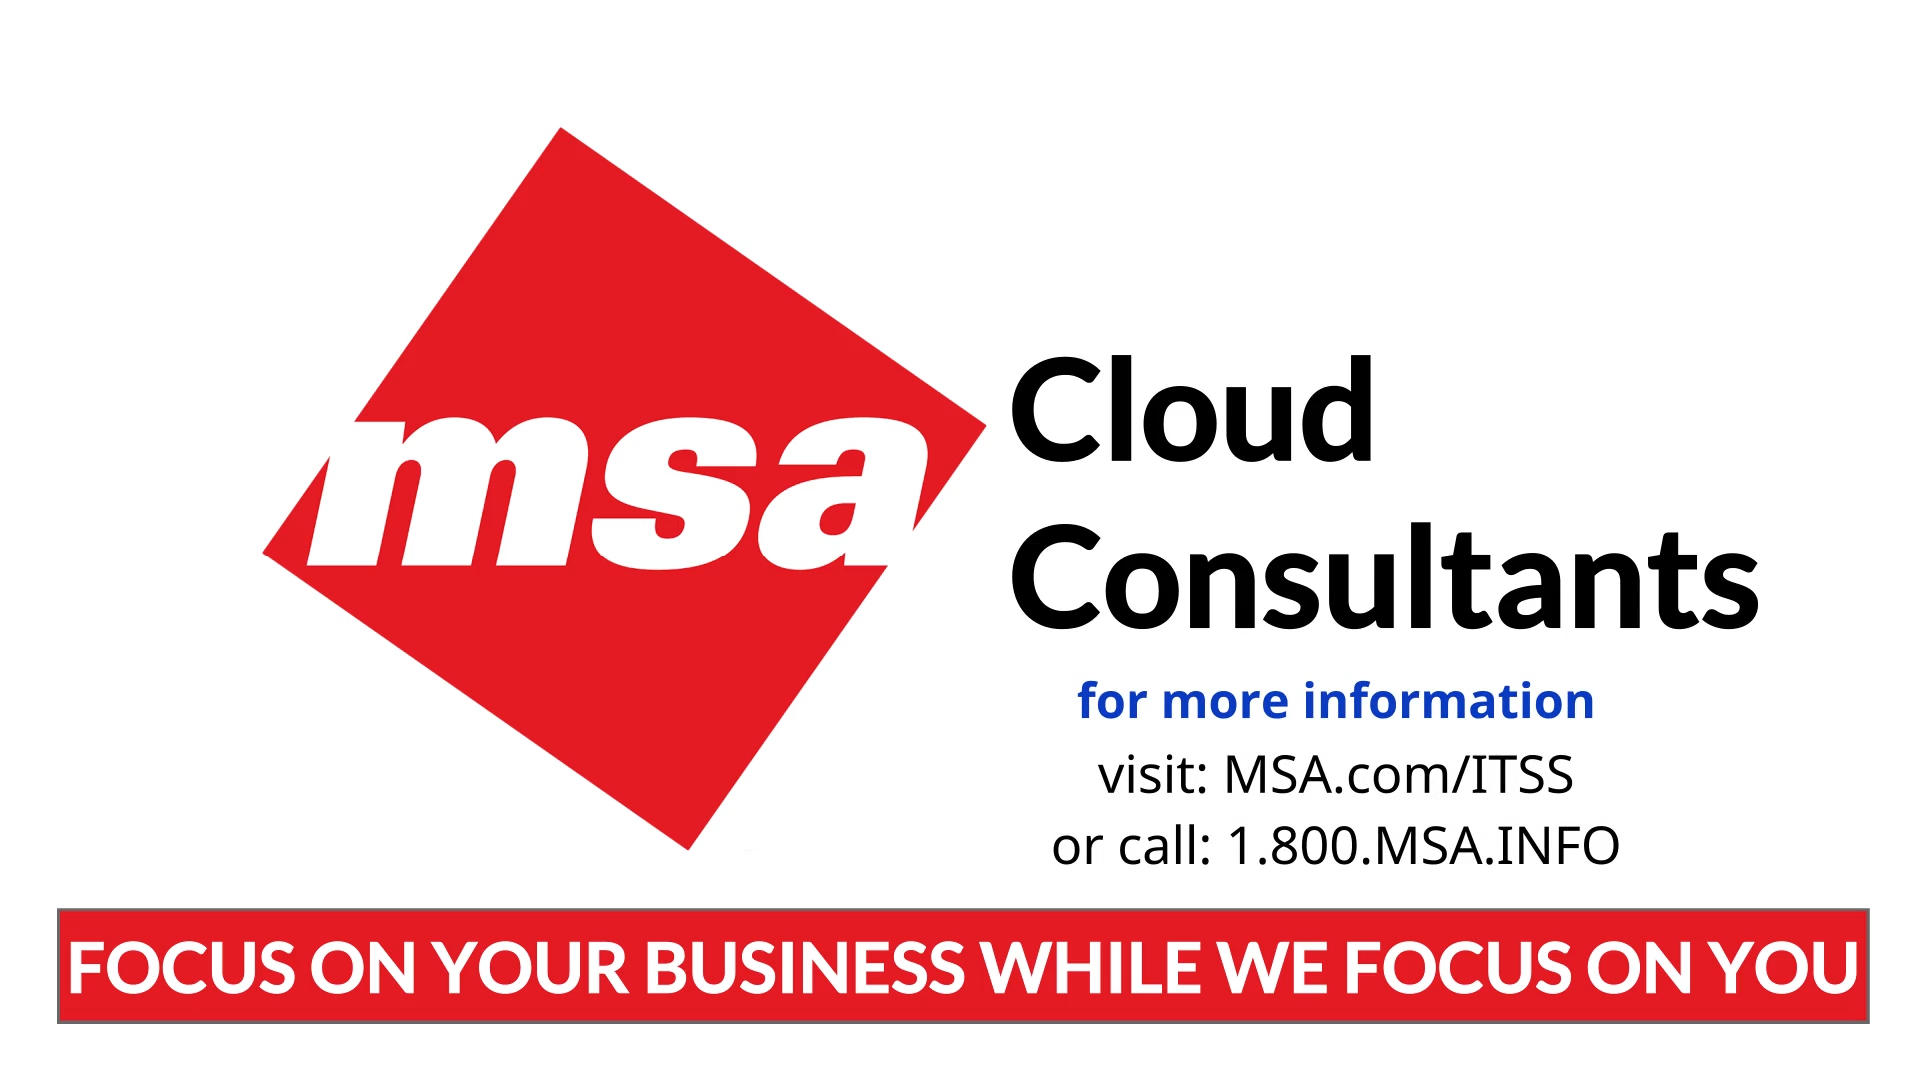 Cloud Consultants Video Splash Page